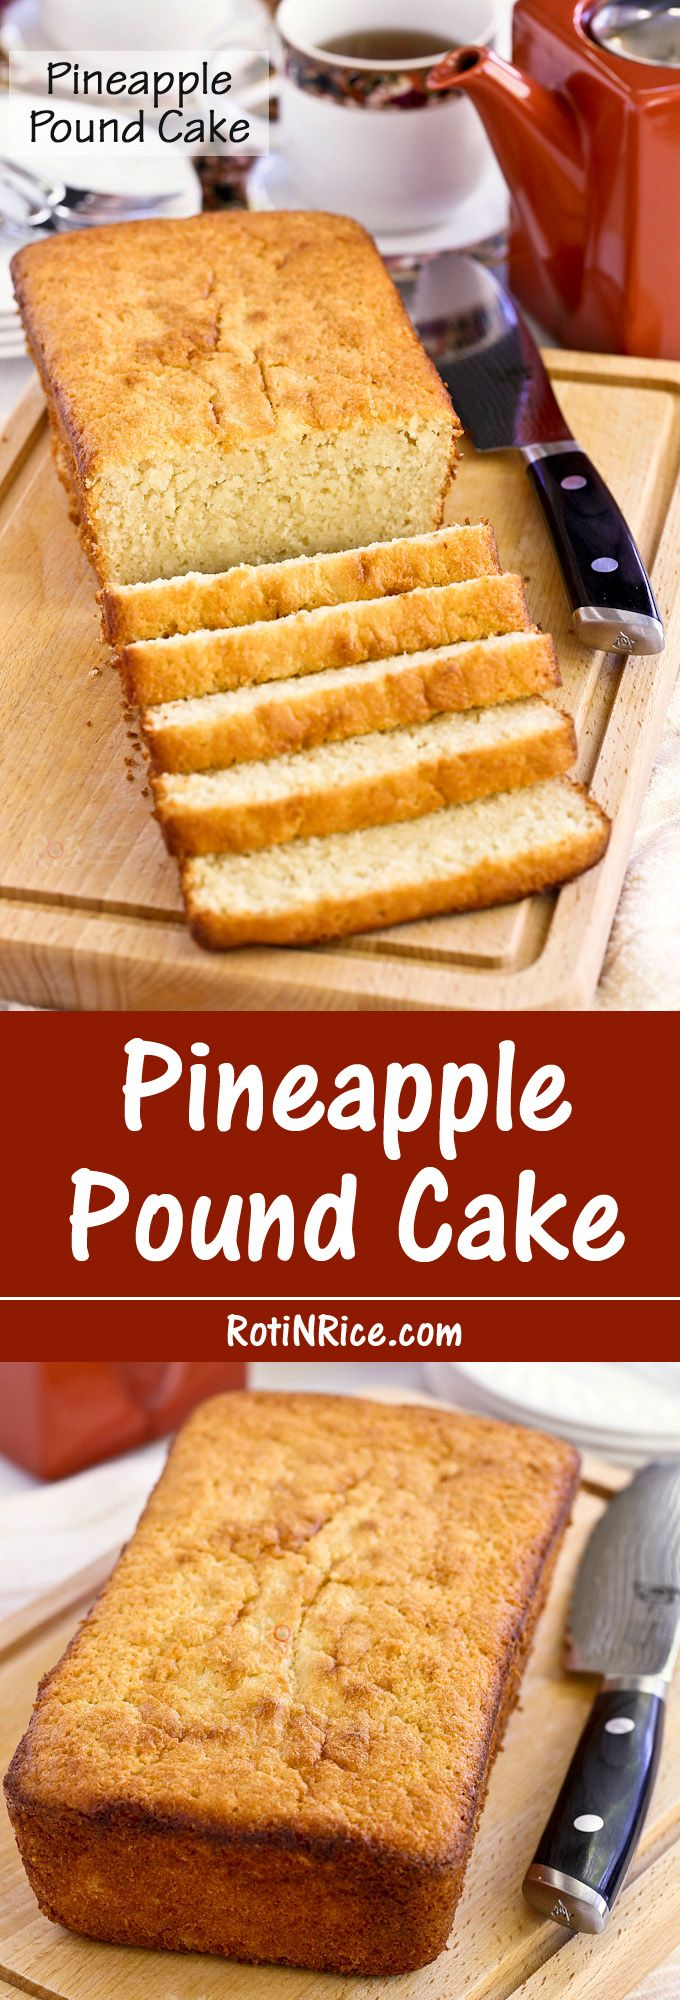 nike shoes from canada This Pineapple Pound Cake is made with pineapple puree for a finer and smoother textured pineapple cake It is deliciously moist and tender  Food to gladden the heart at RotiNRice com